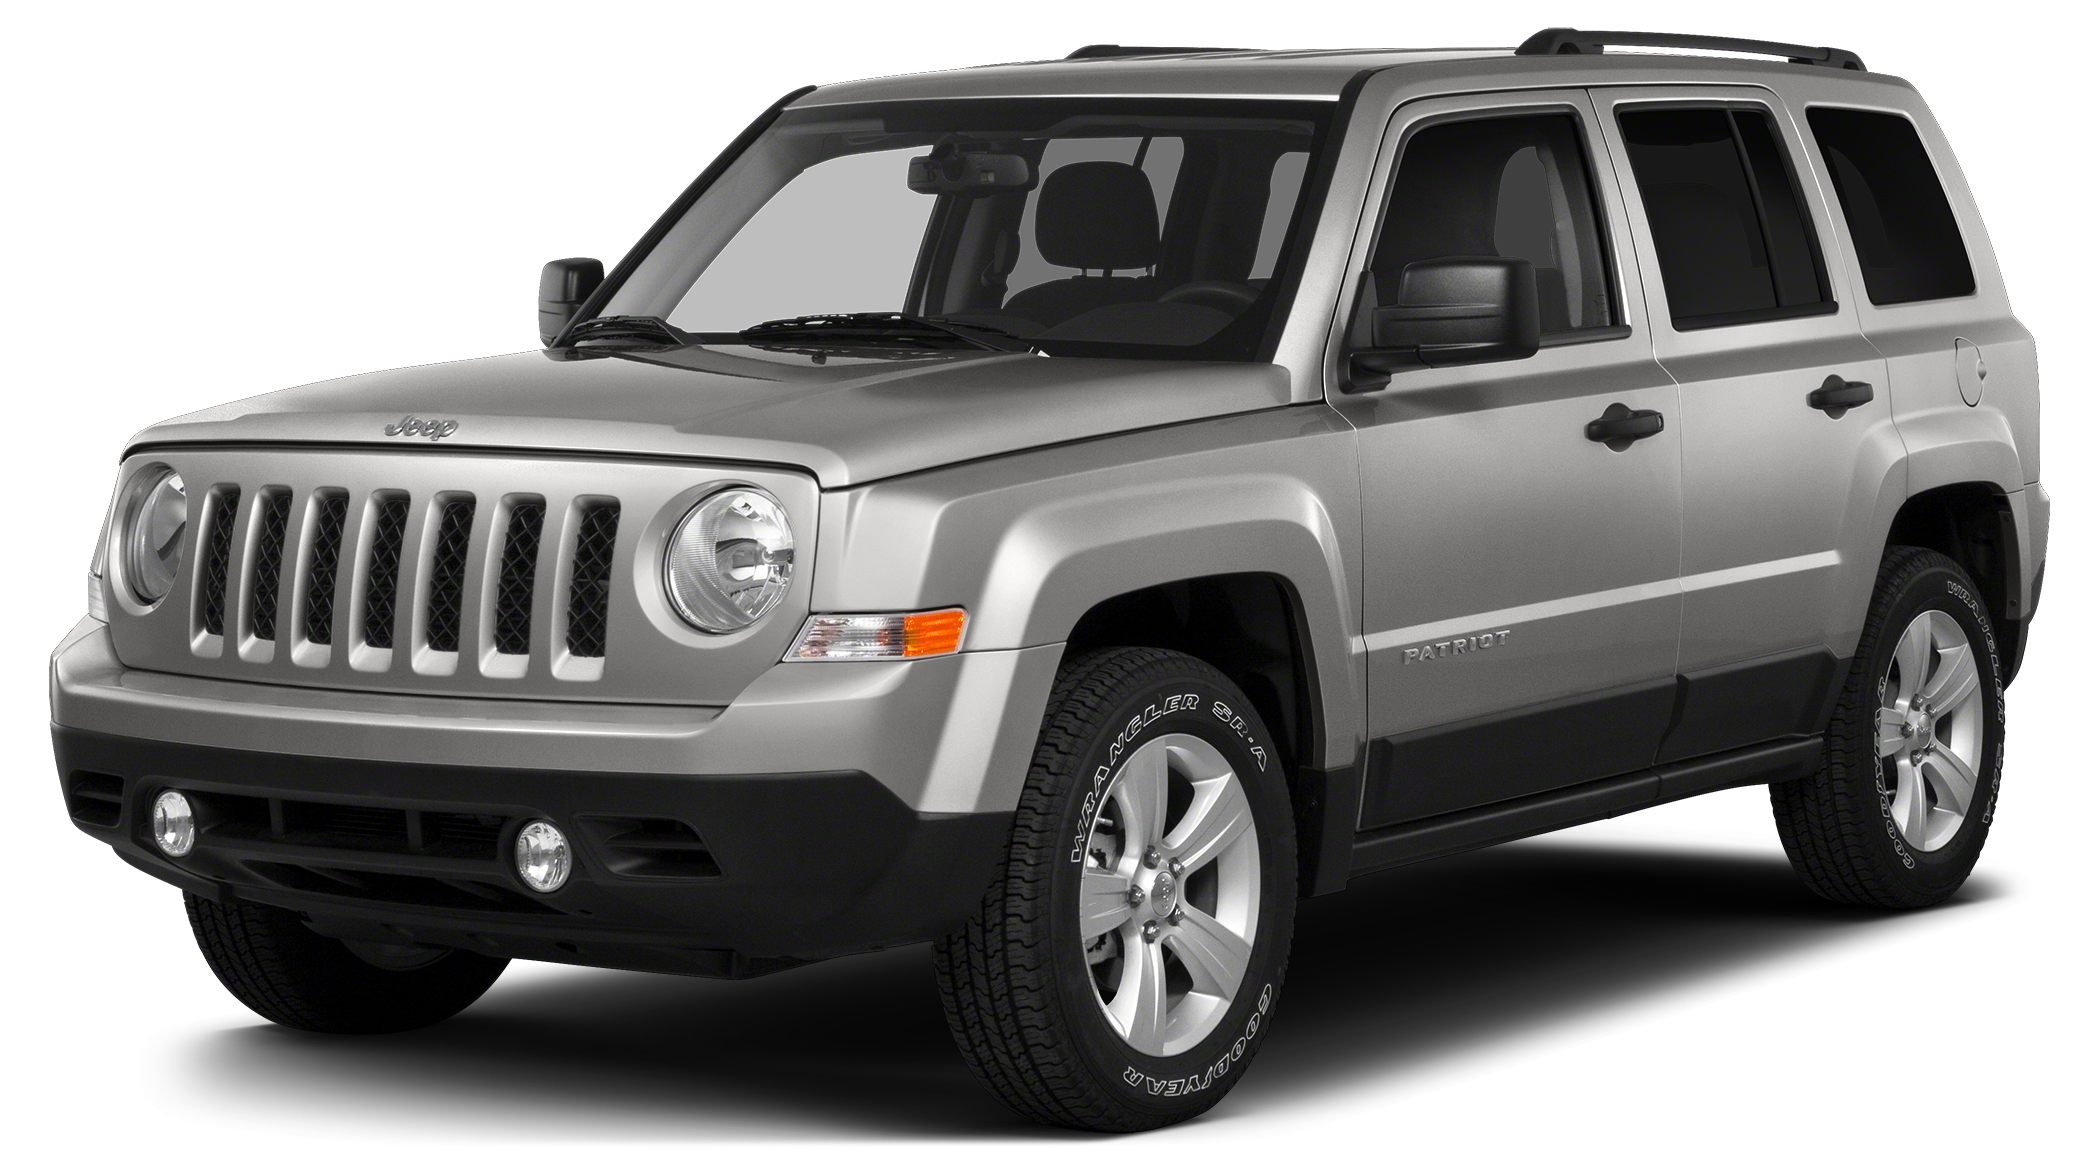 2014 Jeep Patriot Sport EPA 28 MPG Hwy21 MPG City Jeep Certified Excellent Condition AIR CONDI